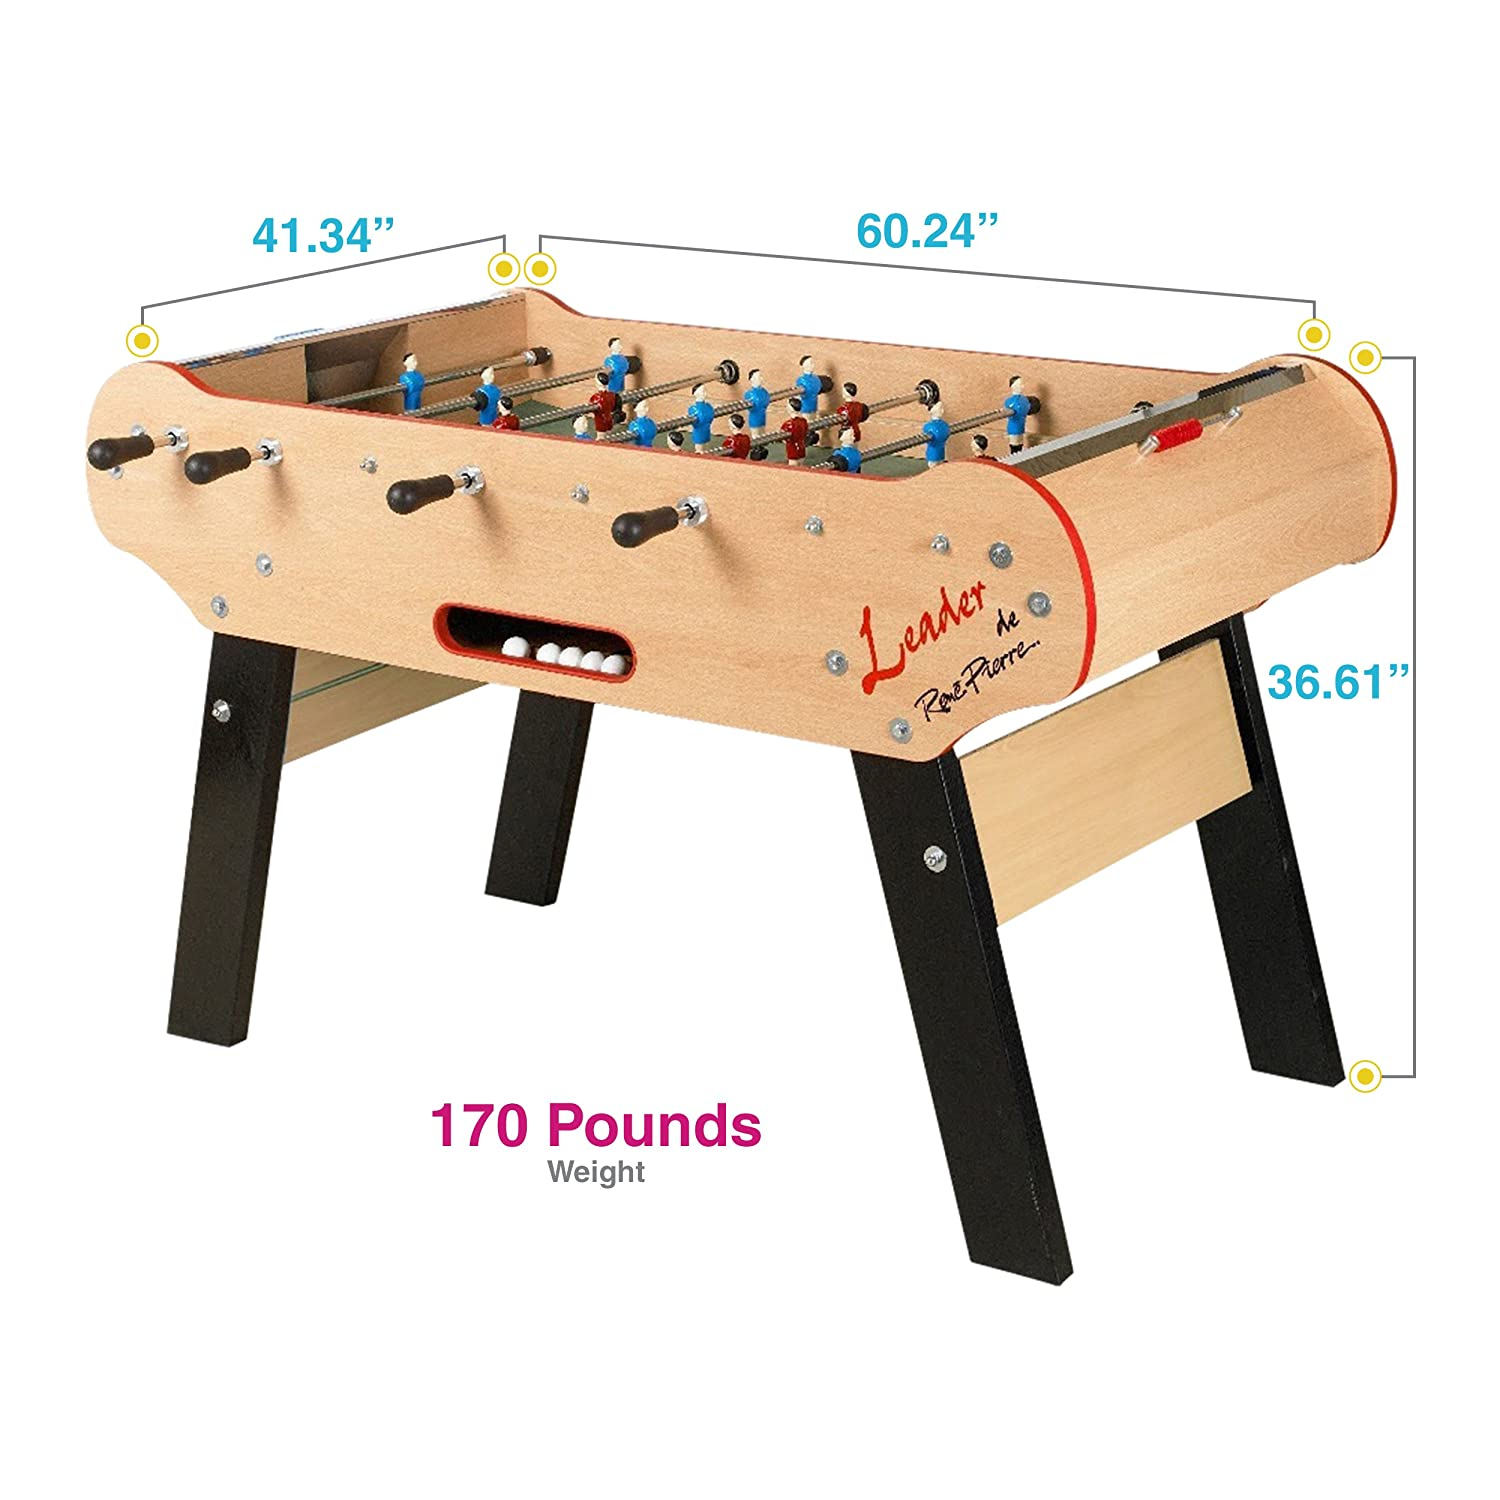 ada99917c2b645 Amazon.com  René Pierre Foosball Table - Leader. Designed with Safety  Telescoping Rods with Ergonomic Handles and Single Goalies.  Toys   Games